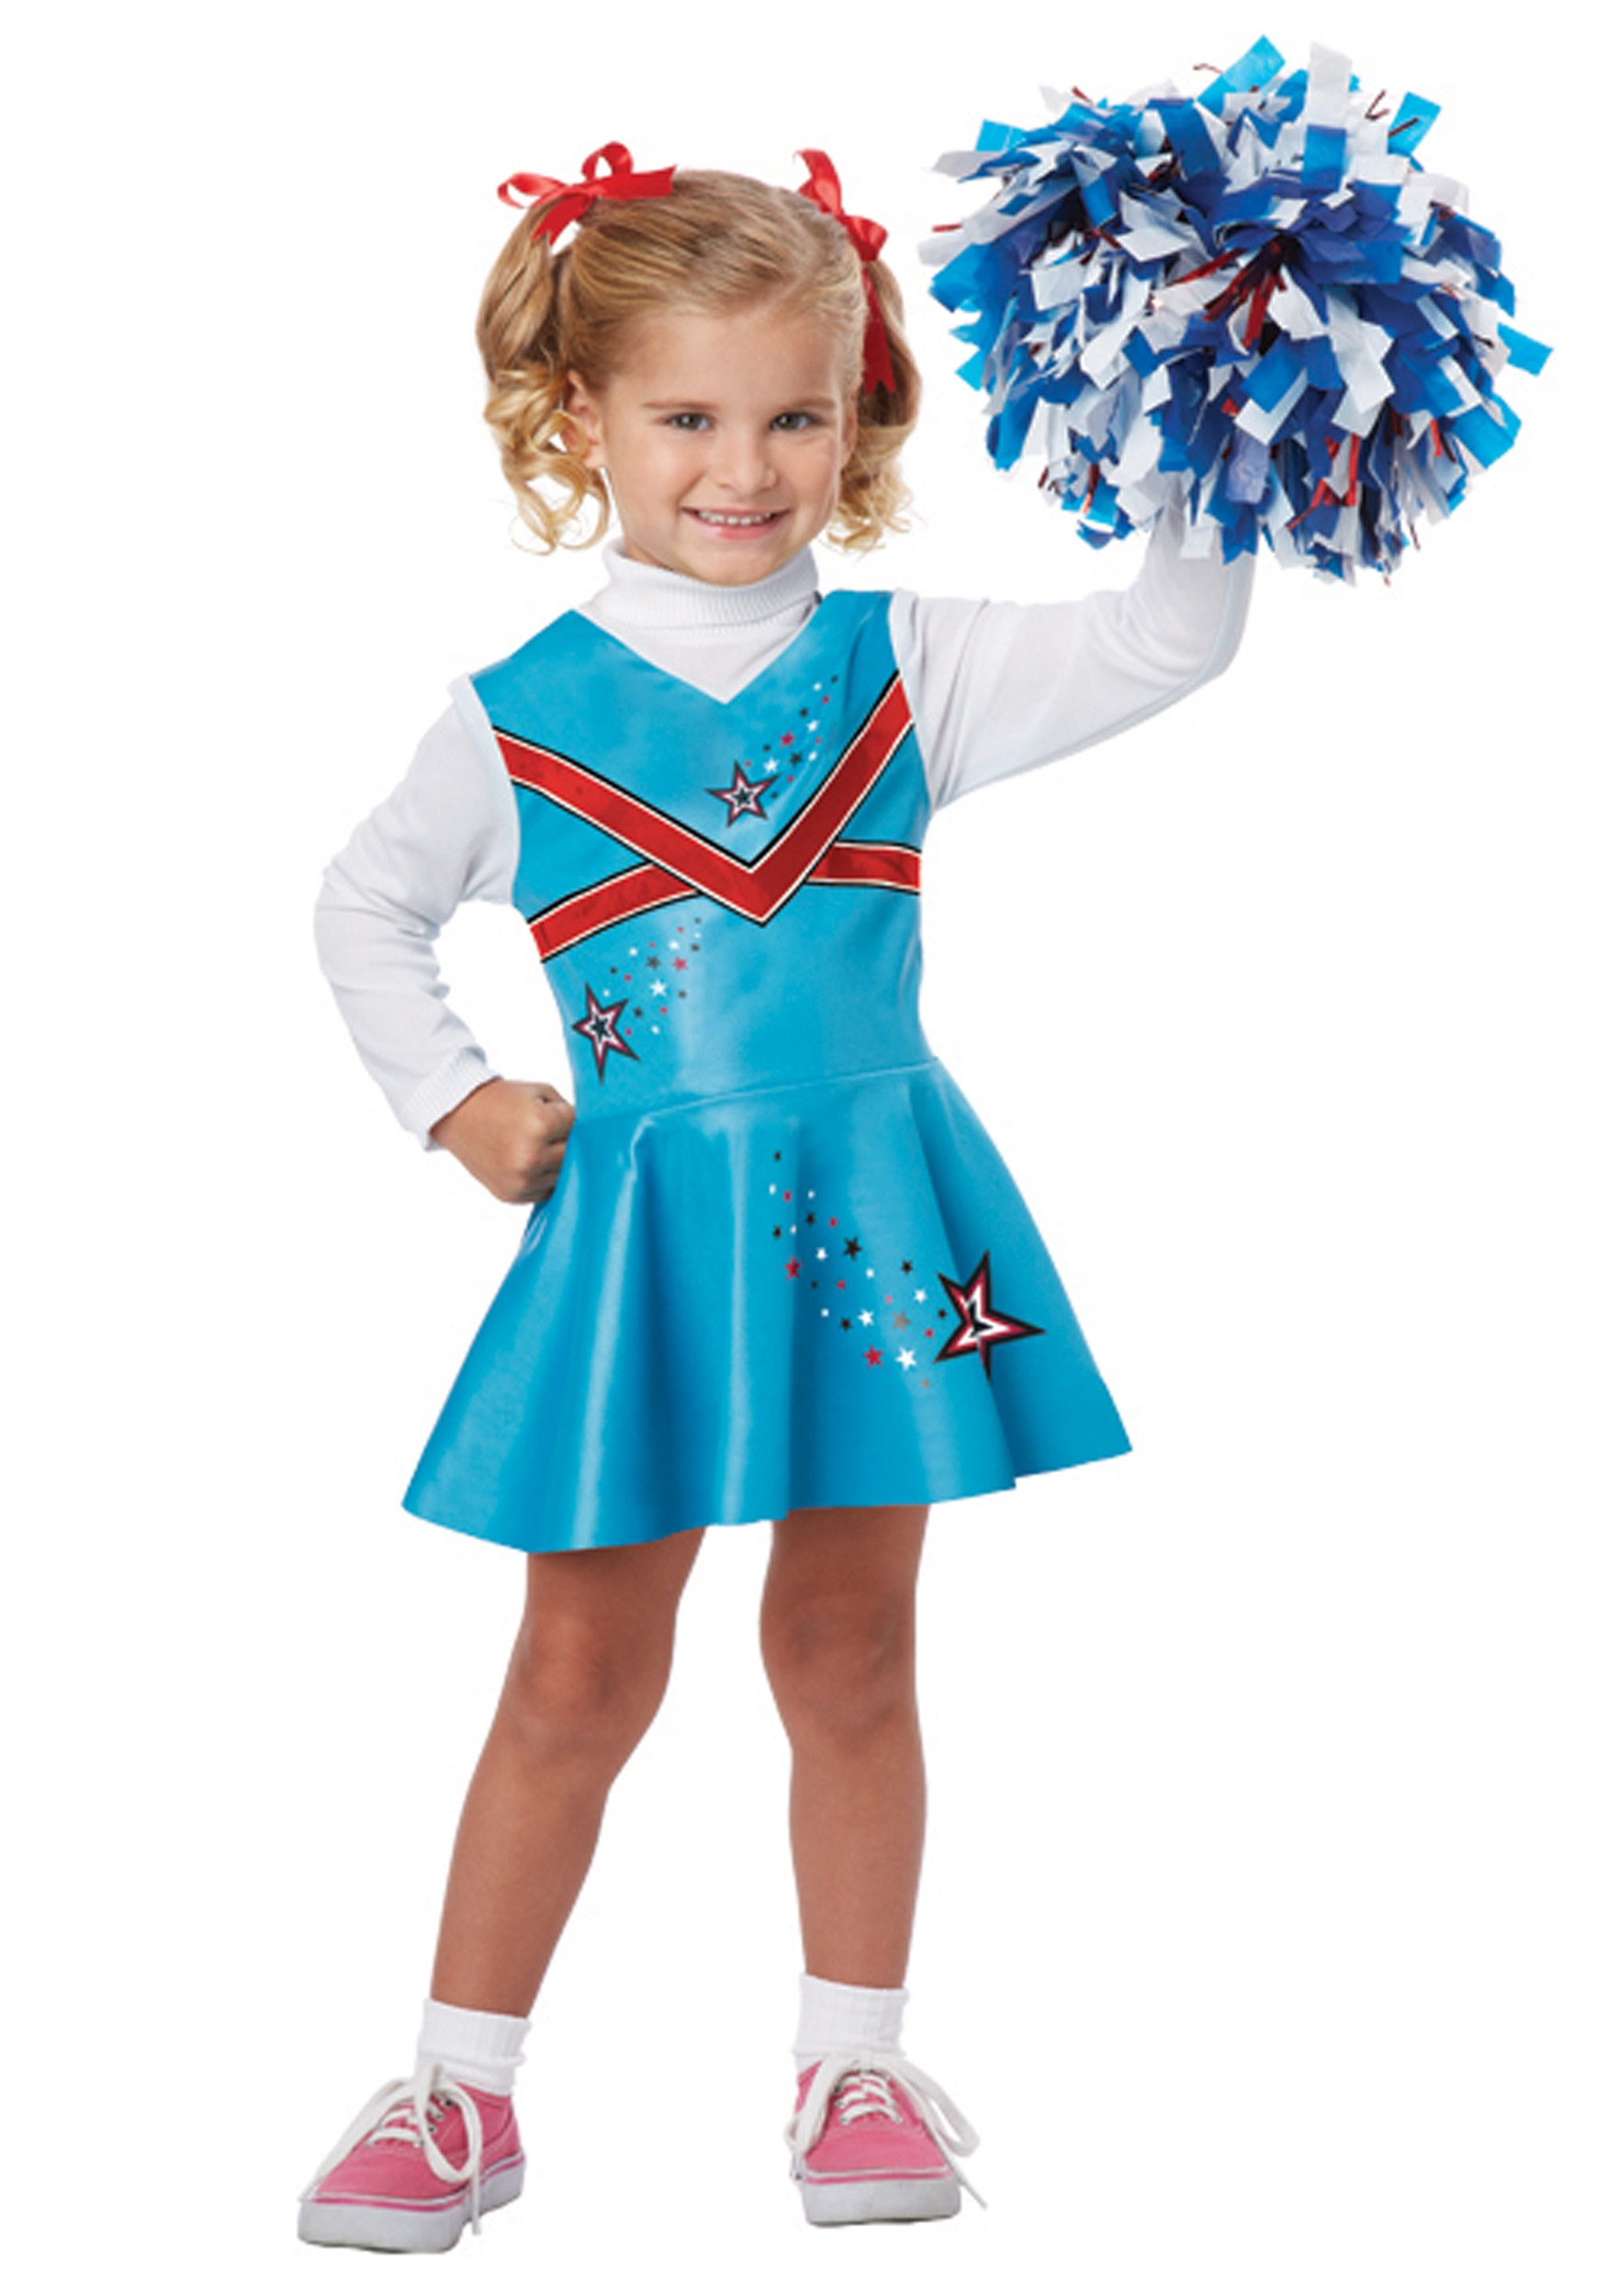 Toddler Cheerleader Costume  sc 1 st  Halloween Costumes & Toddler Cheerleader Costume - Halloween Costumes